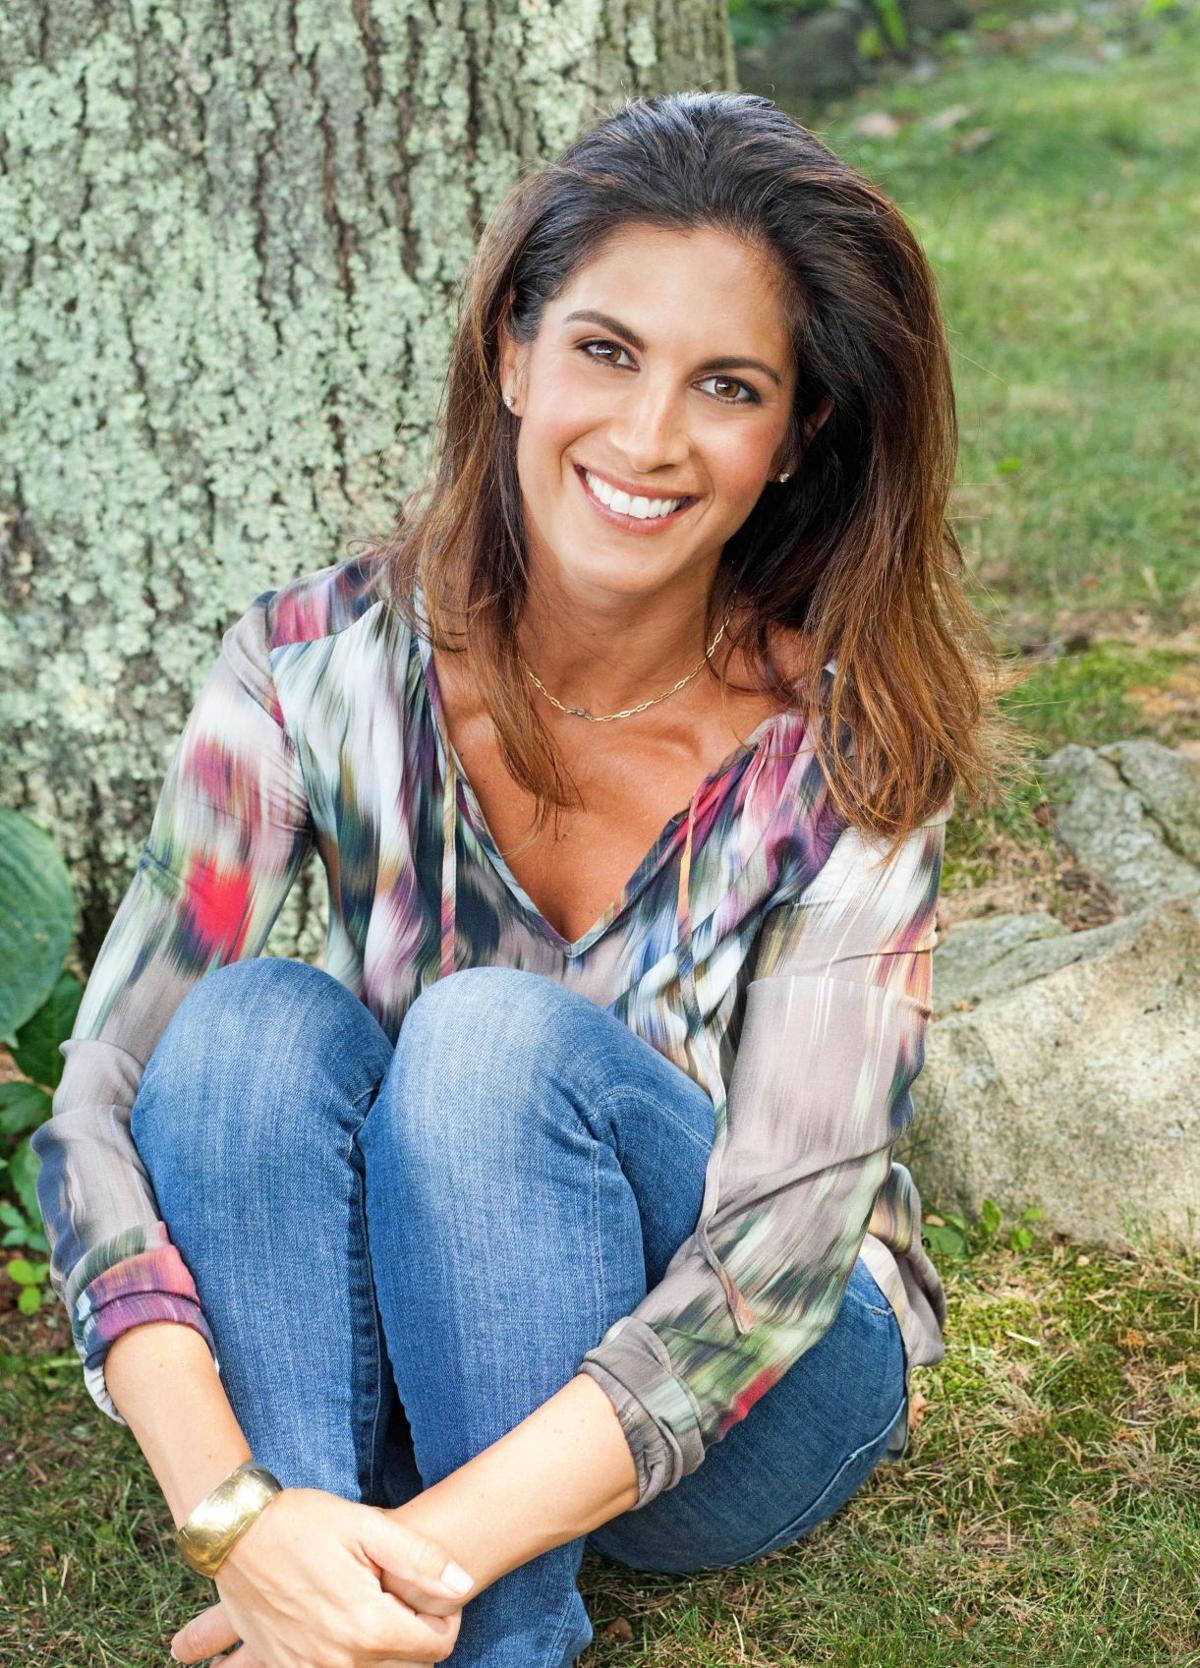 Life coach provides guidance, clarity for clients